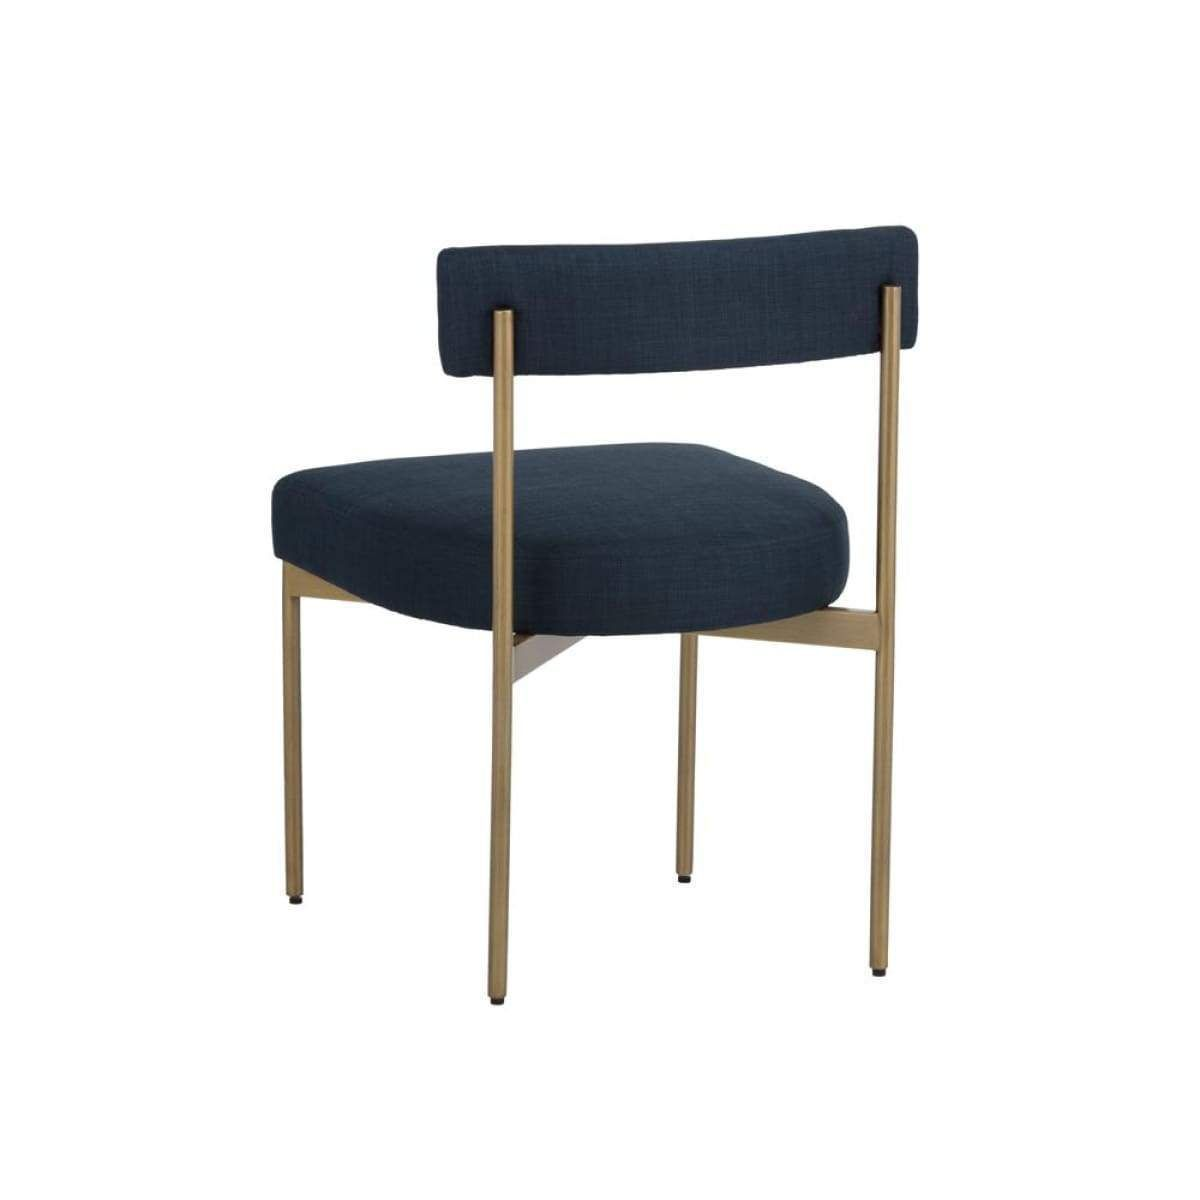 Sawyer Dining Chair Navy Set Of 2 Chair Dining Navyset Sawyer In 2020 Dining Chairs Chair Antique Dining Chairs